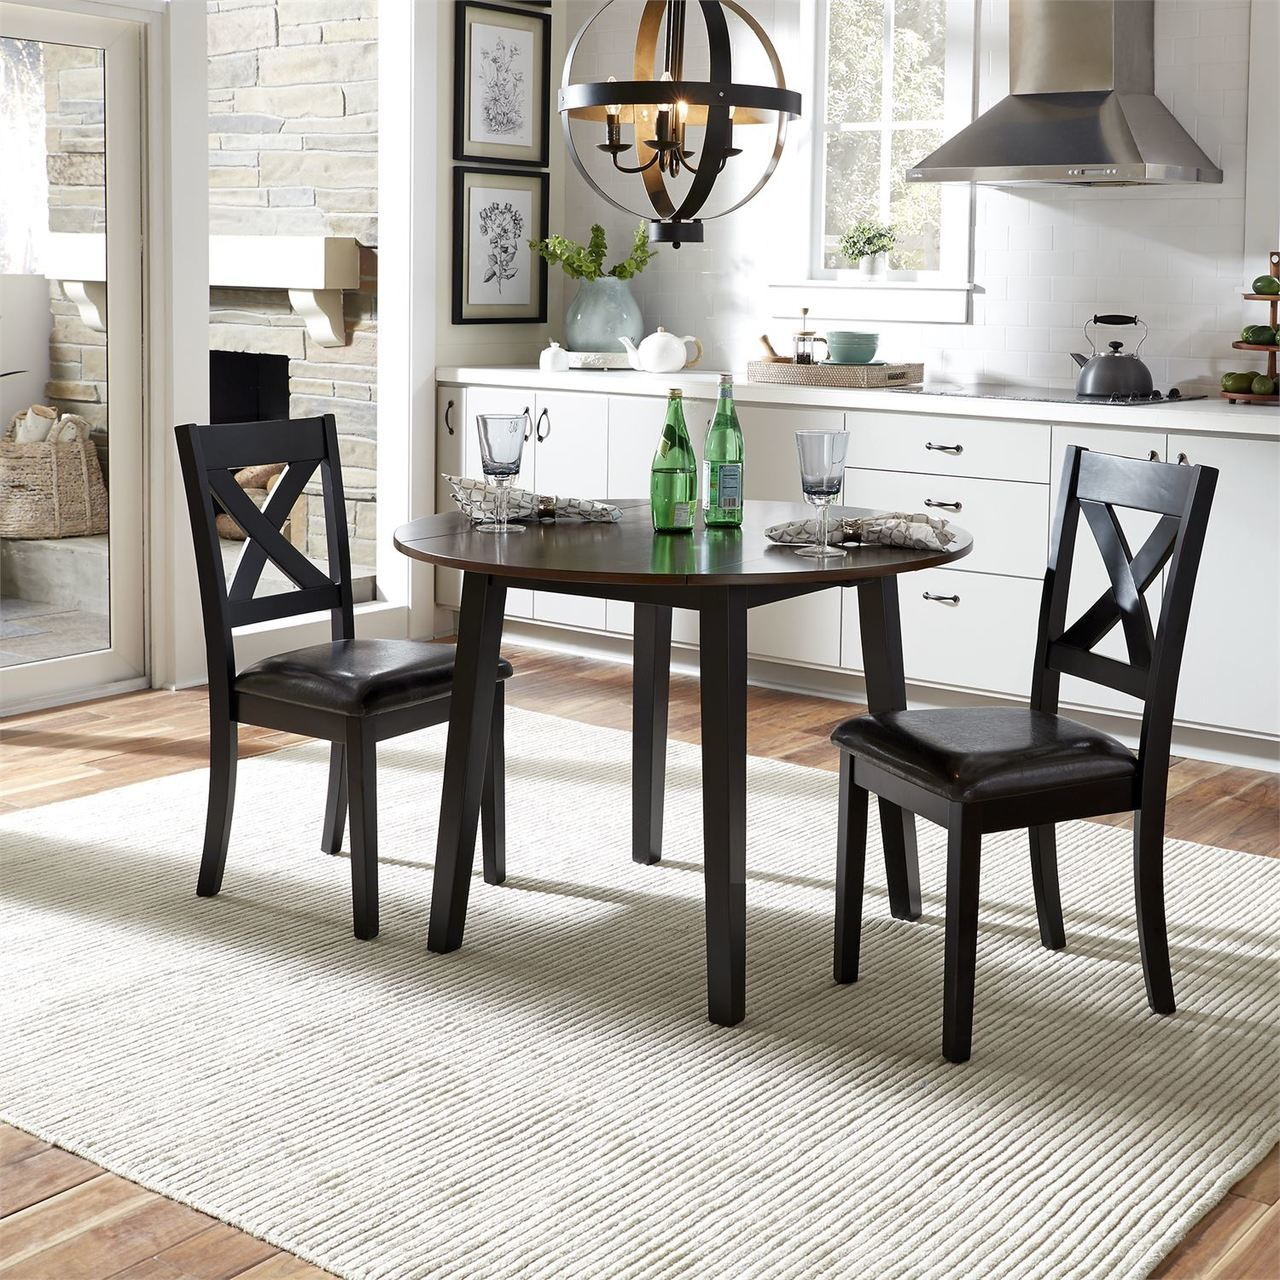 464 3 Piece Drop Leaf Table Set Dinette $395